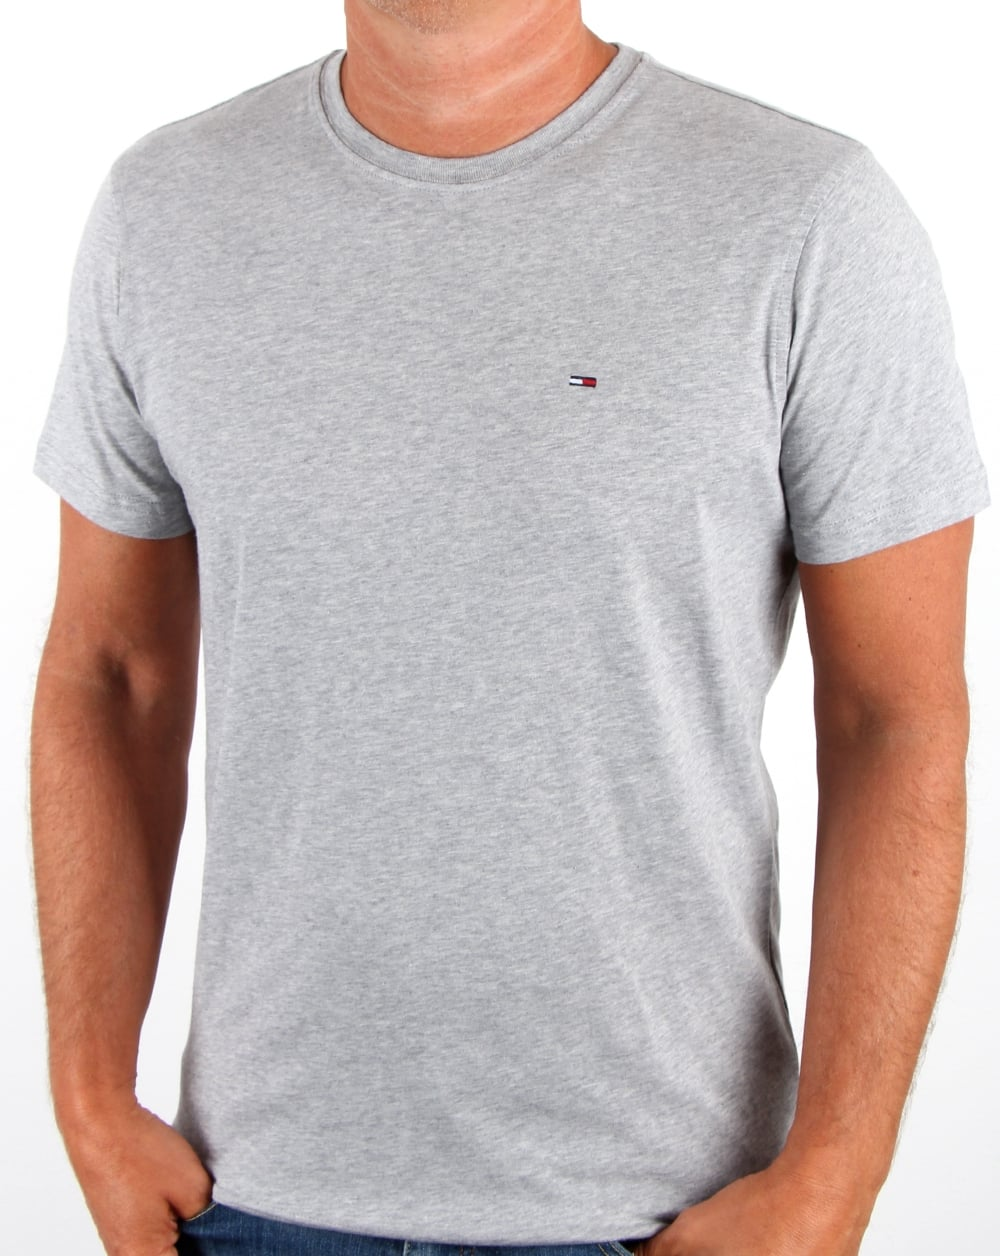 b3b817231 Tommy Hilfiger Jeans Tommy Hilfiger Cotton Crew Neck T Shirt Light Grey  Heather